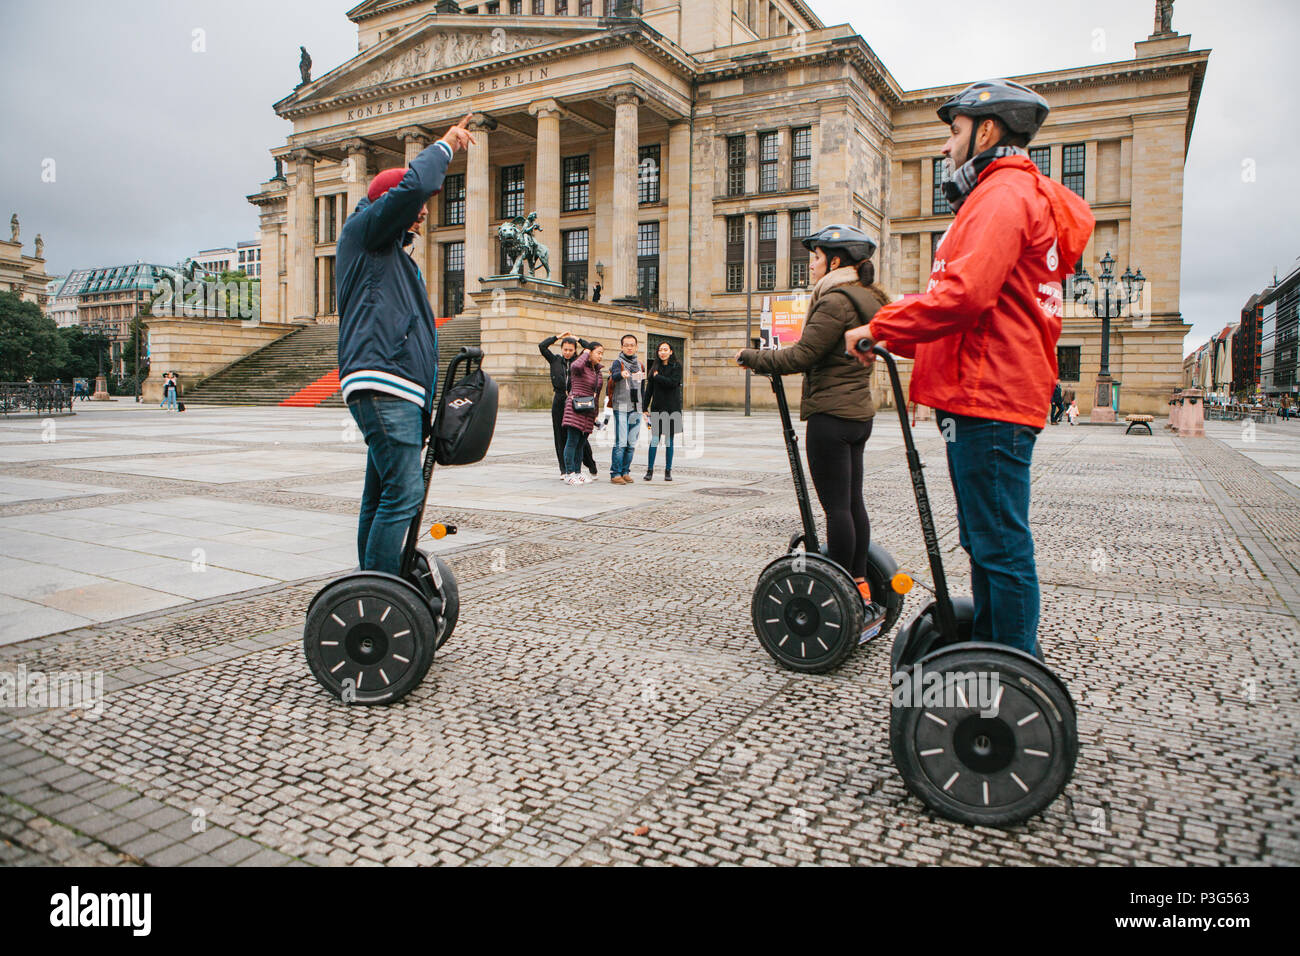 Berlin, October 1, 2017: Tourists on the square next to the Berlin Concert House - Stock Image